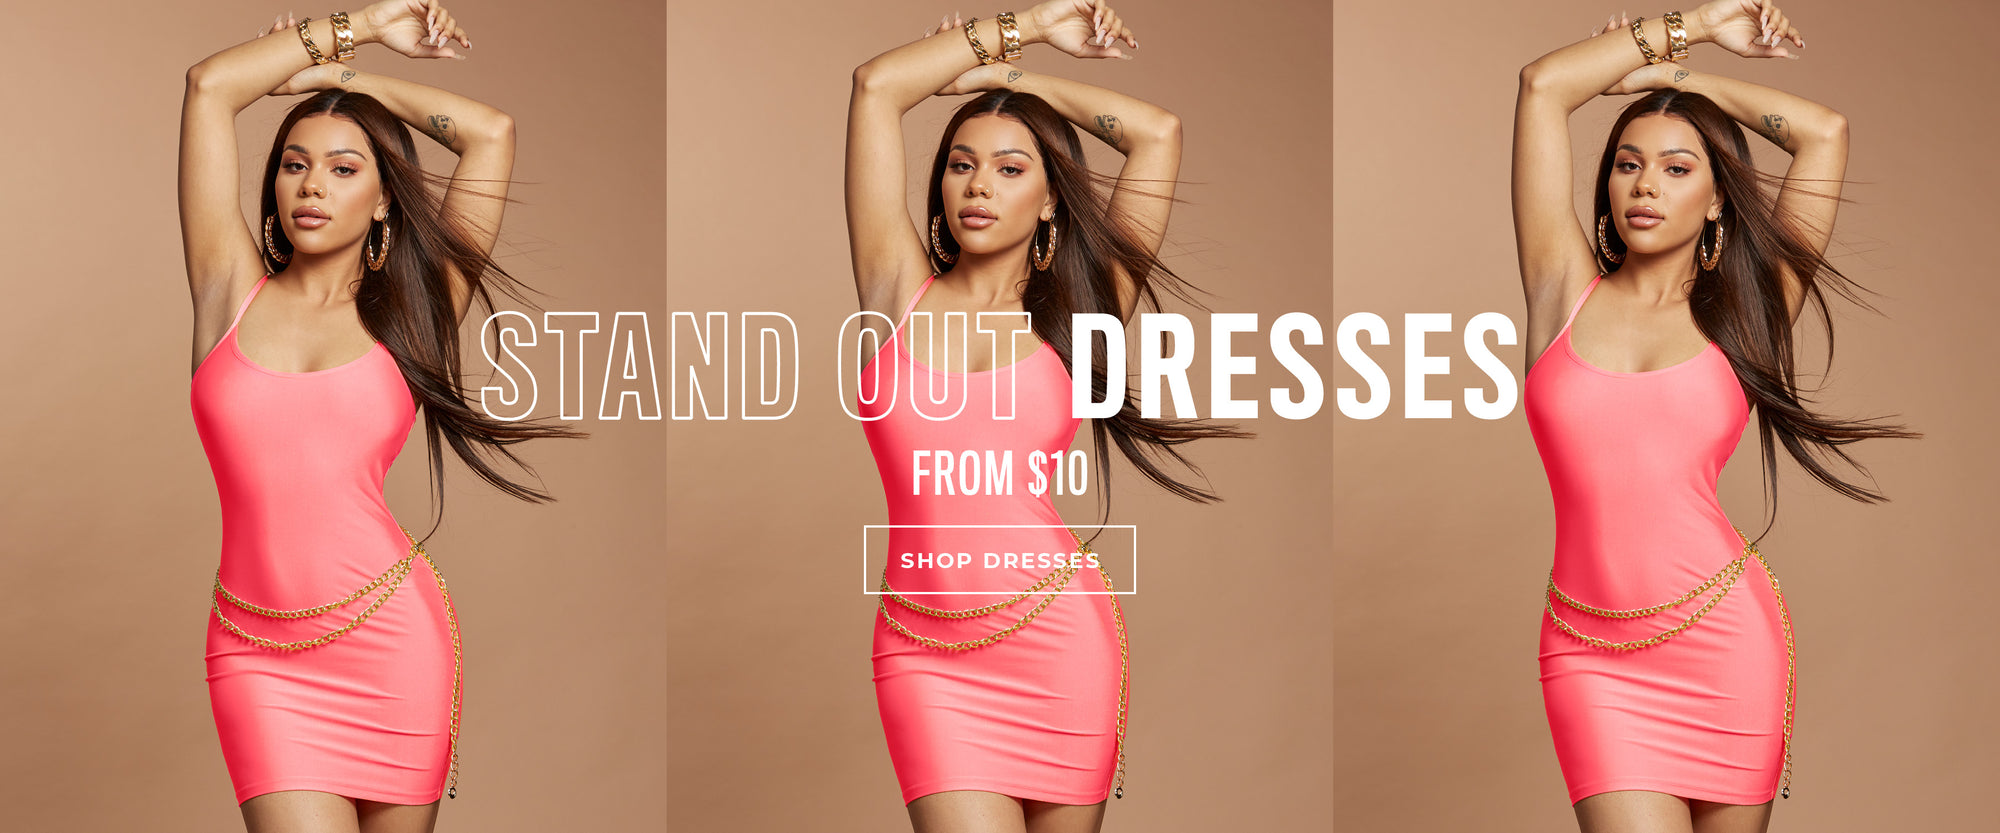 Charlotte Russe | Best Dresses from $5 - Shop Dresses